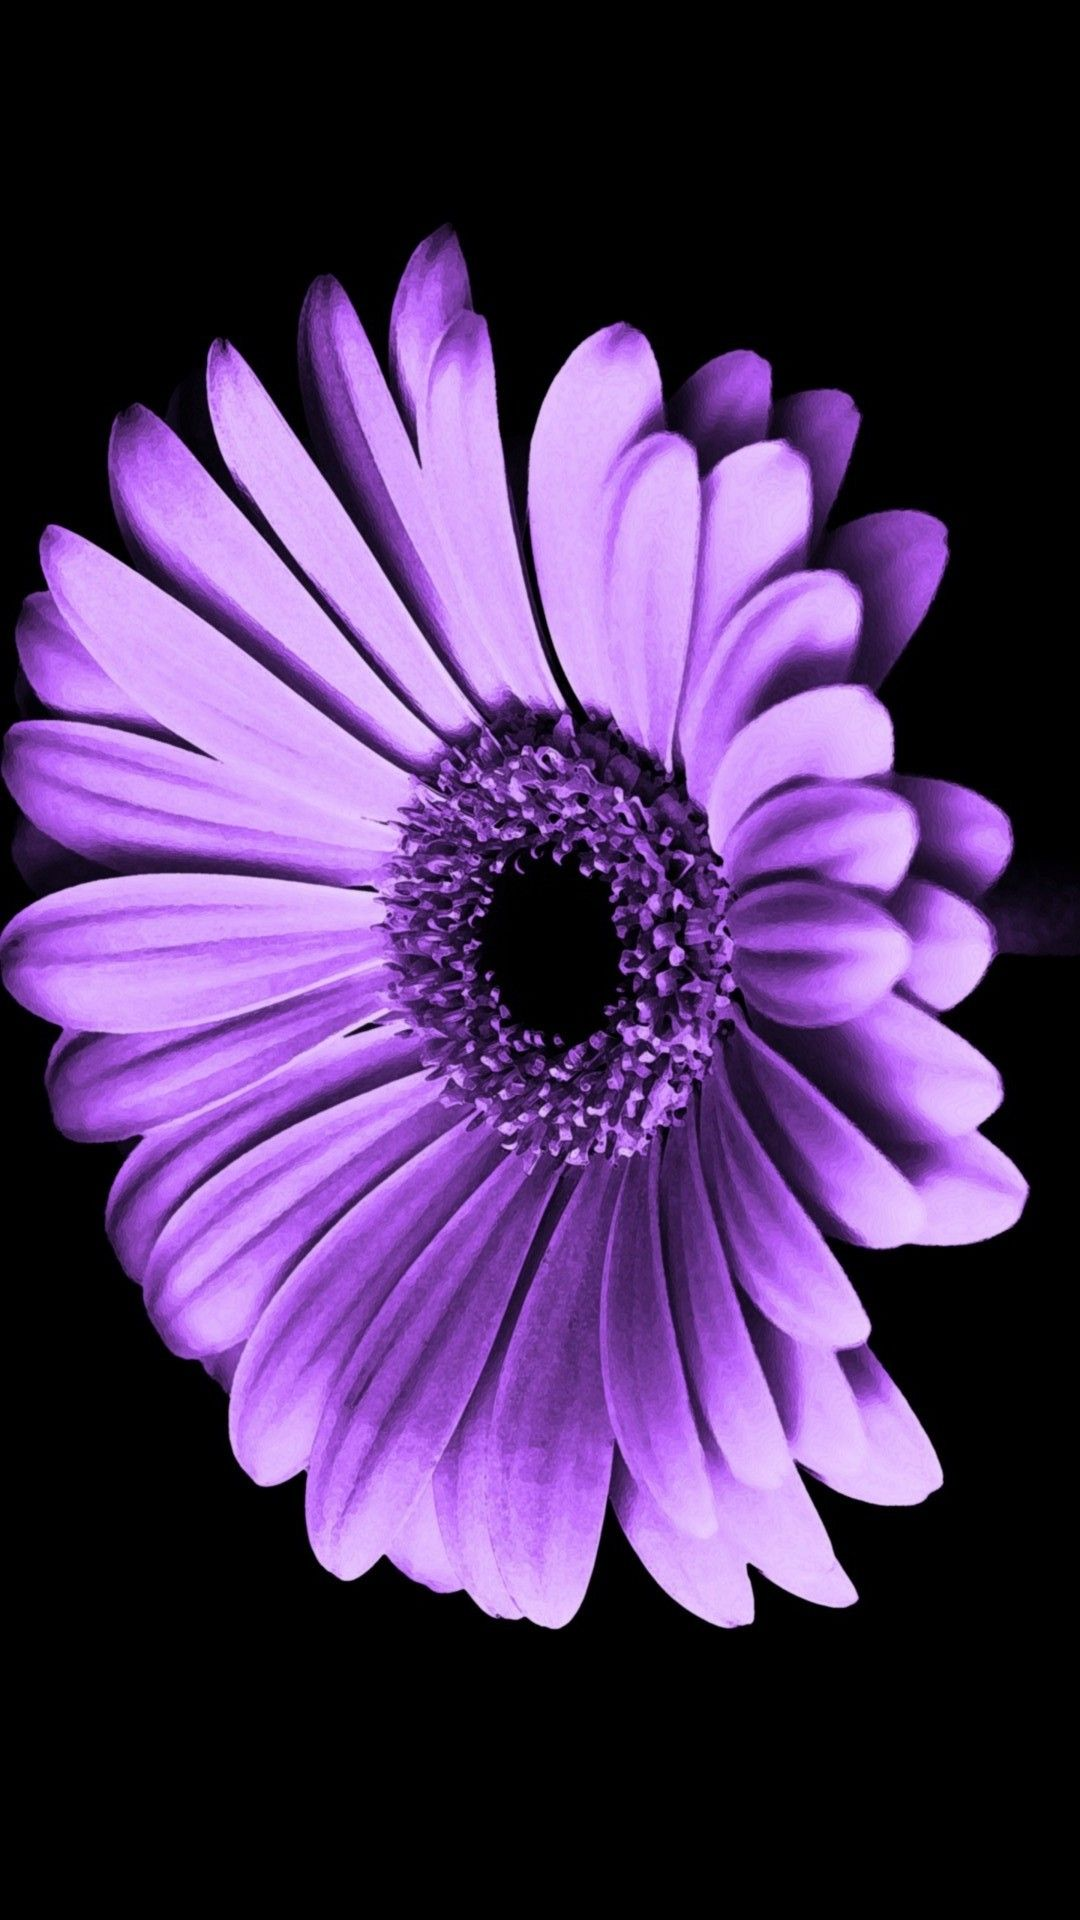 Purple Flowers iPhone Wallpaper HD Best HD Wallpapers